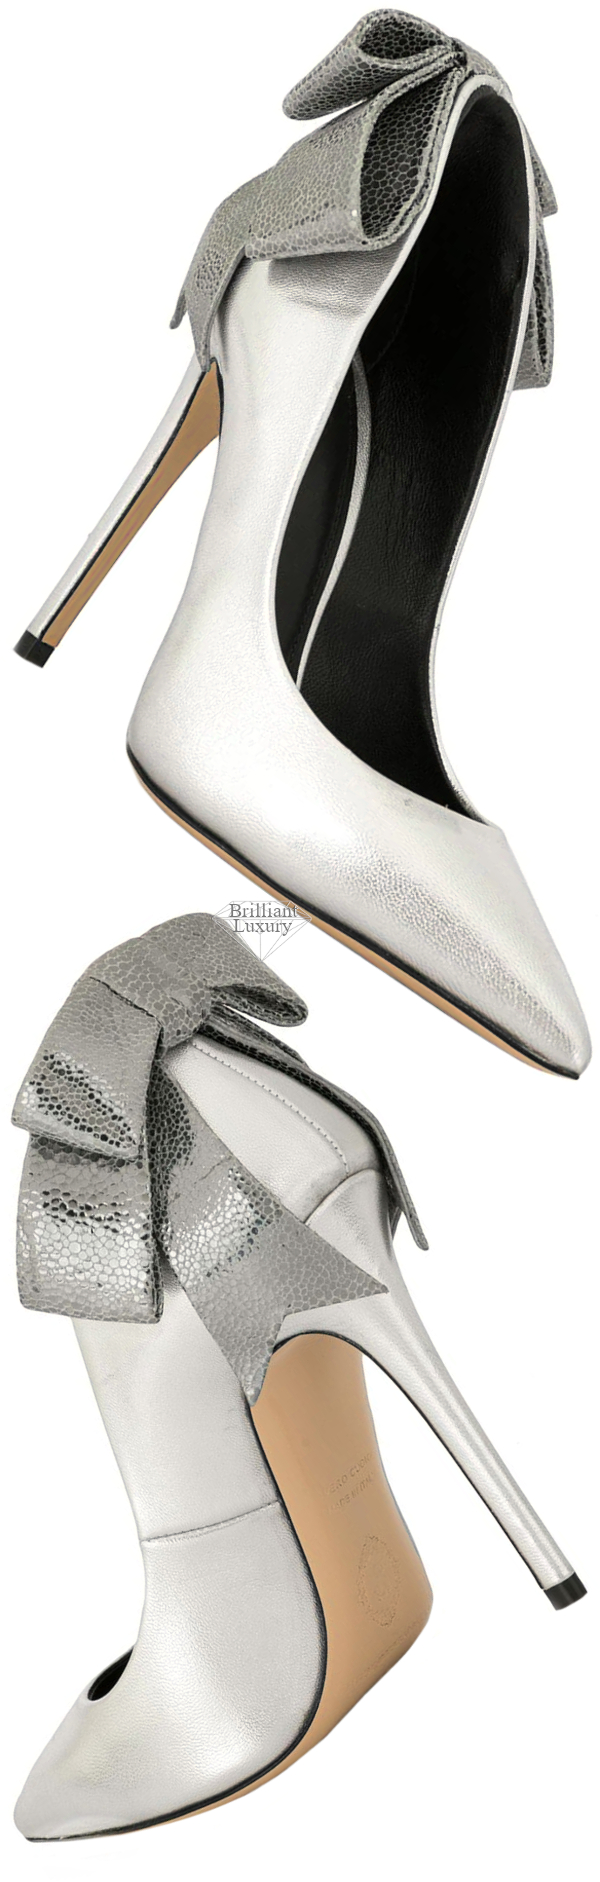 silver Gherda bow pump #brilliantluxury